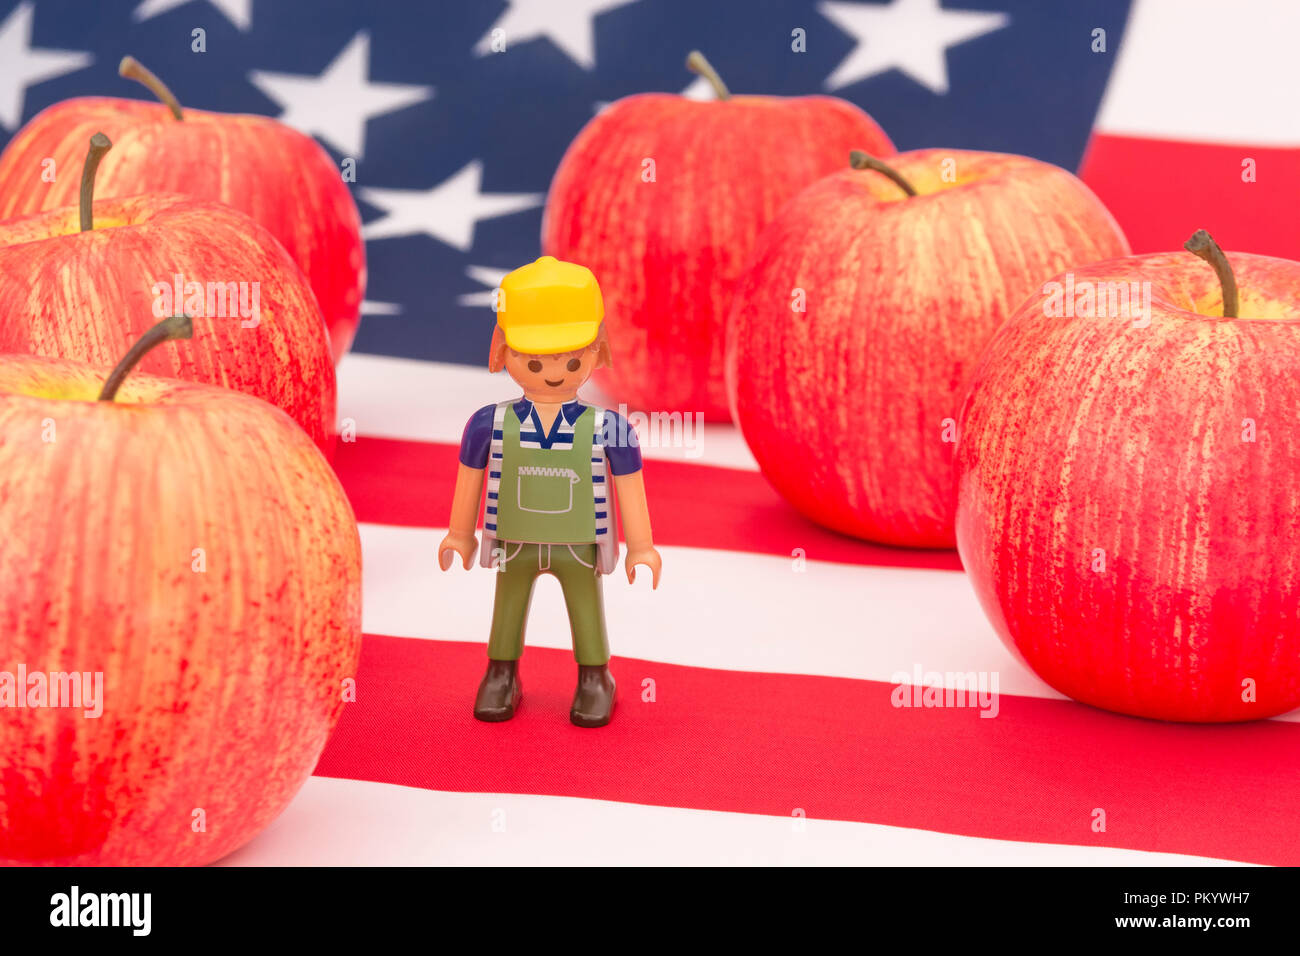 Red apples + US American flag / Stars and Stripes - metaphor US apple industry, Chinese trade tariffs on imports of American apples. Small toy farmer - Stock Image